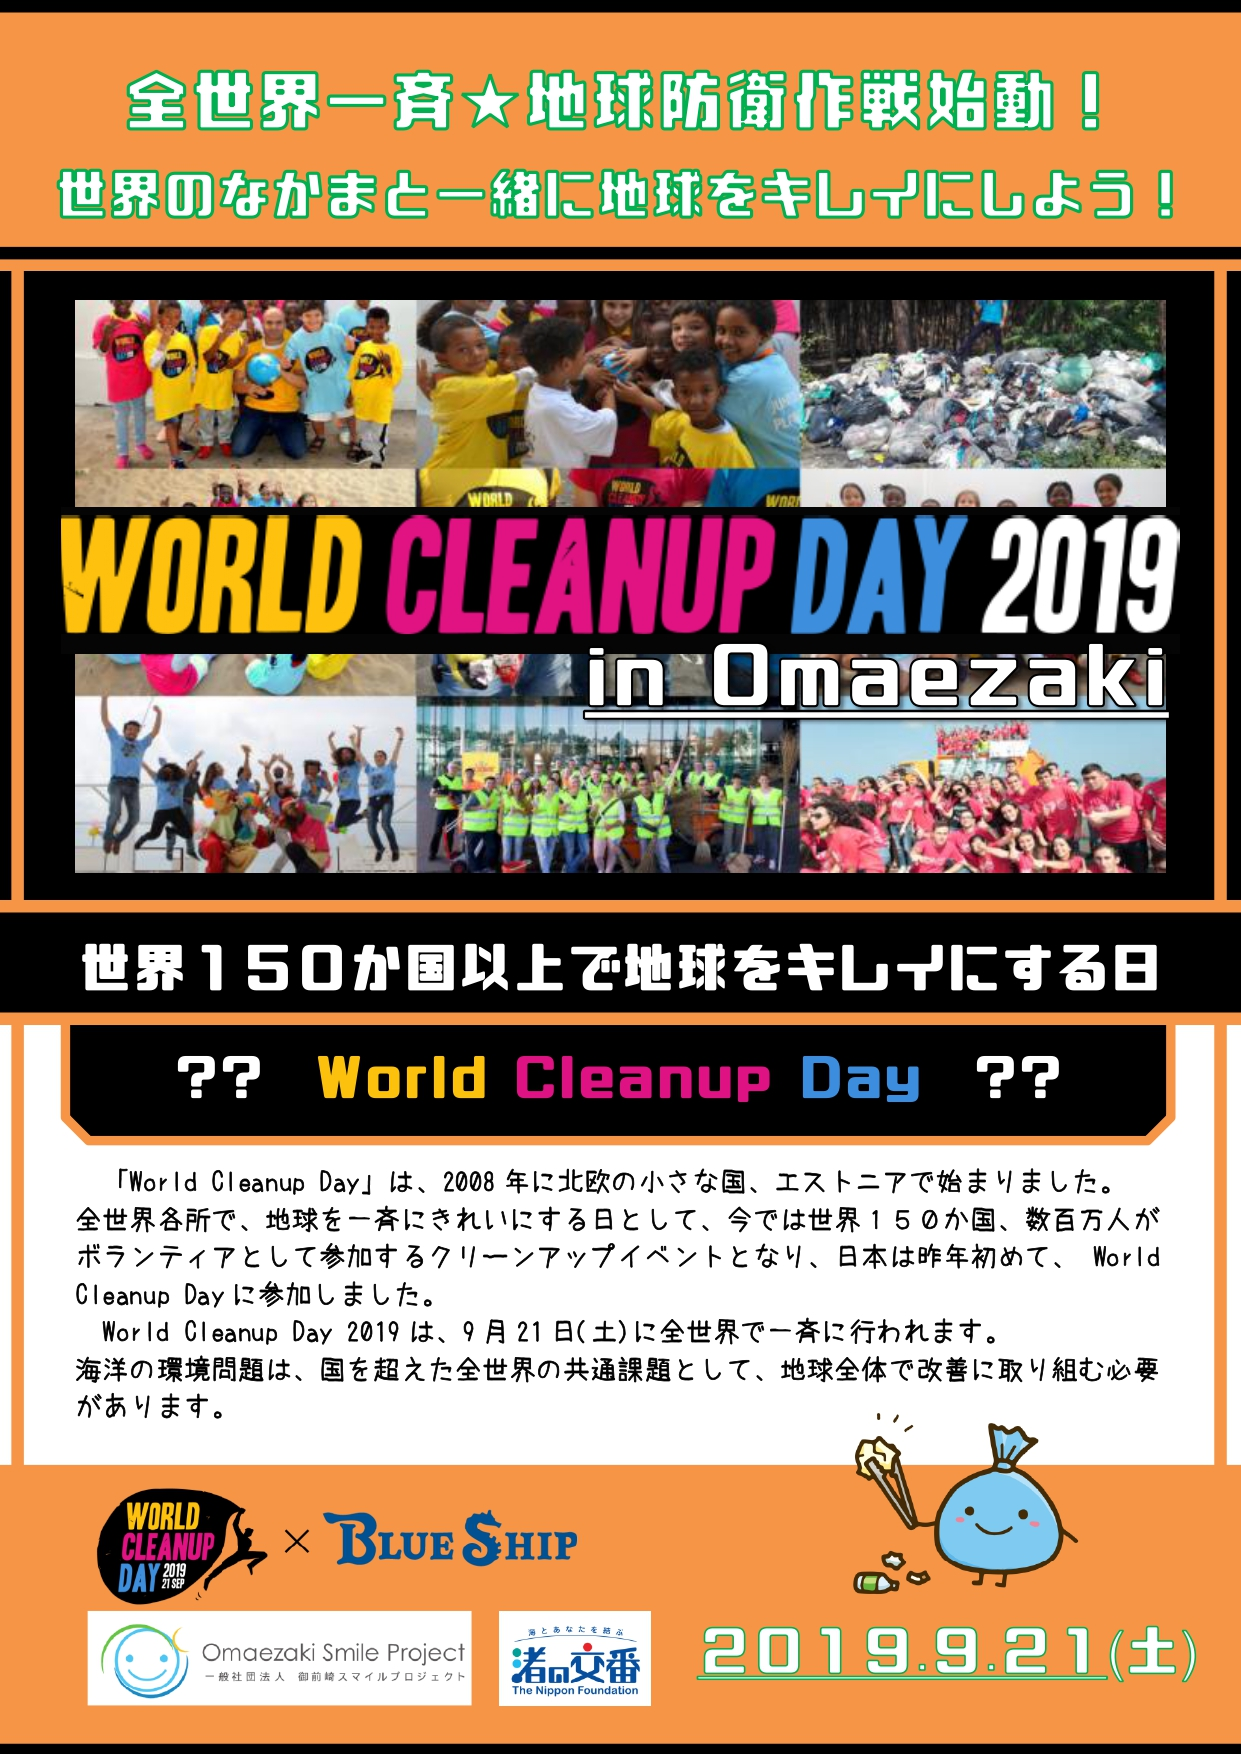 World Cleanup Day 2019 in Omaezaki